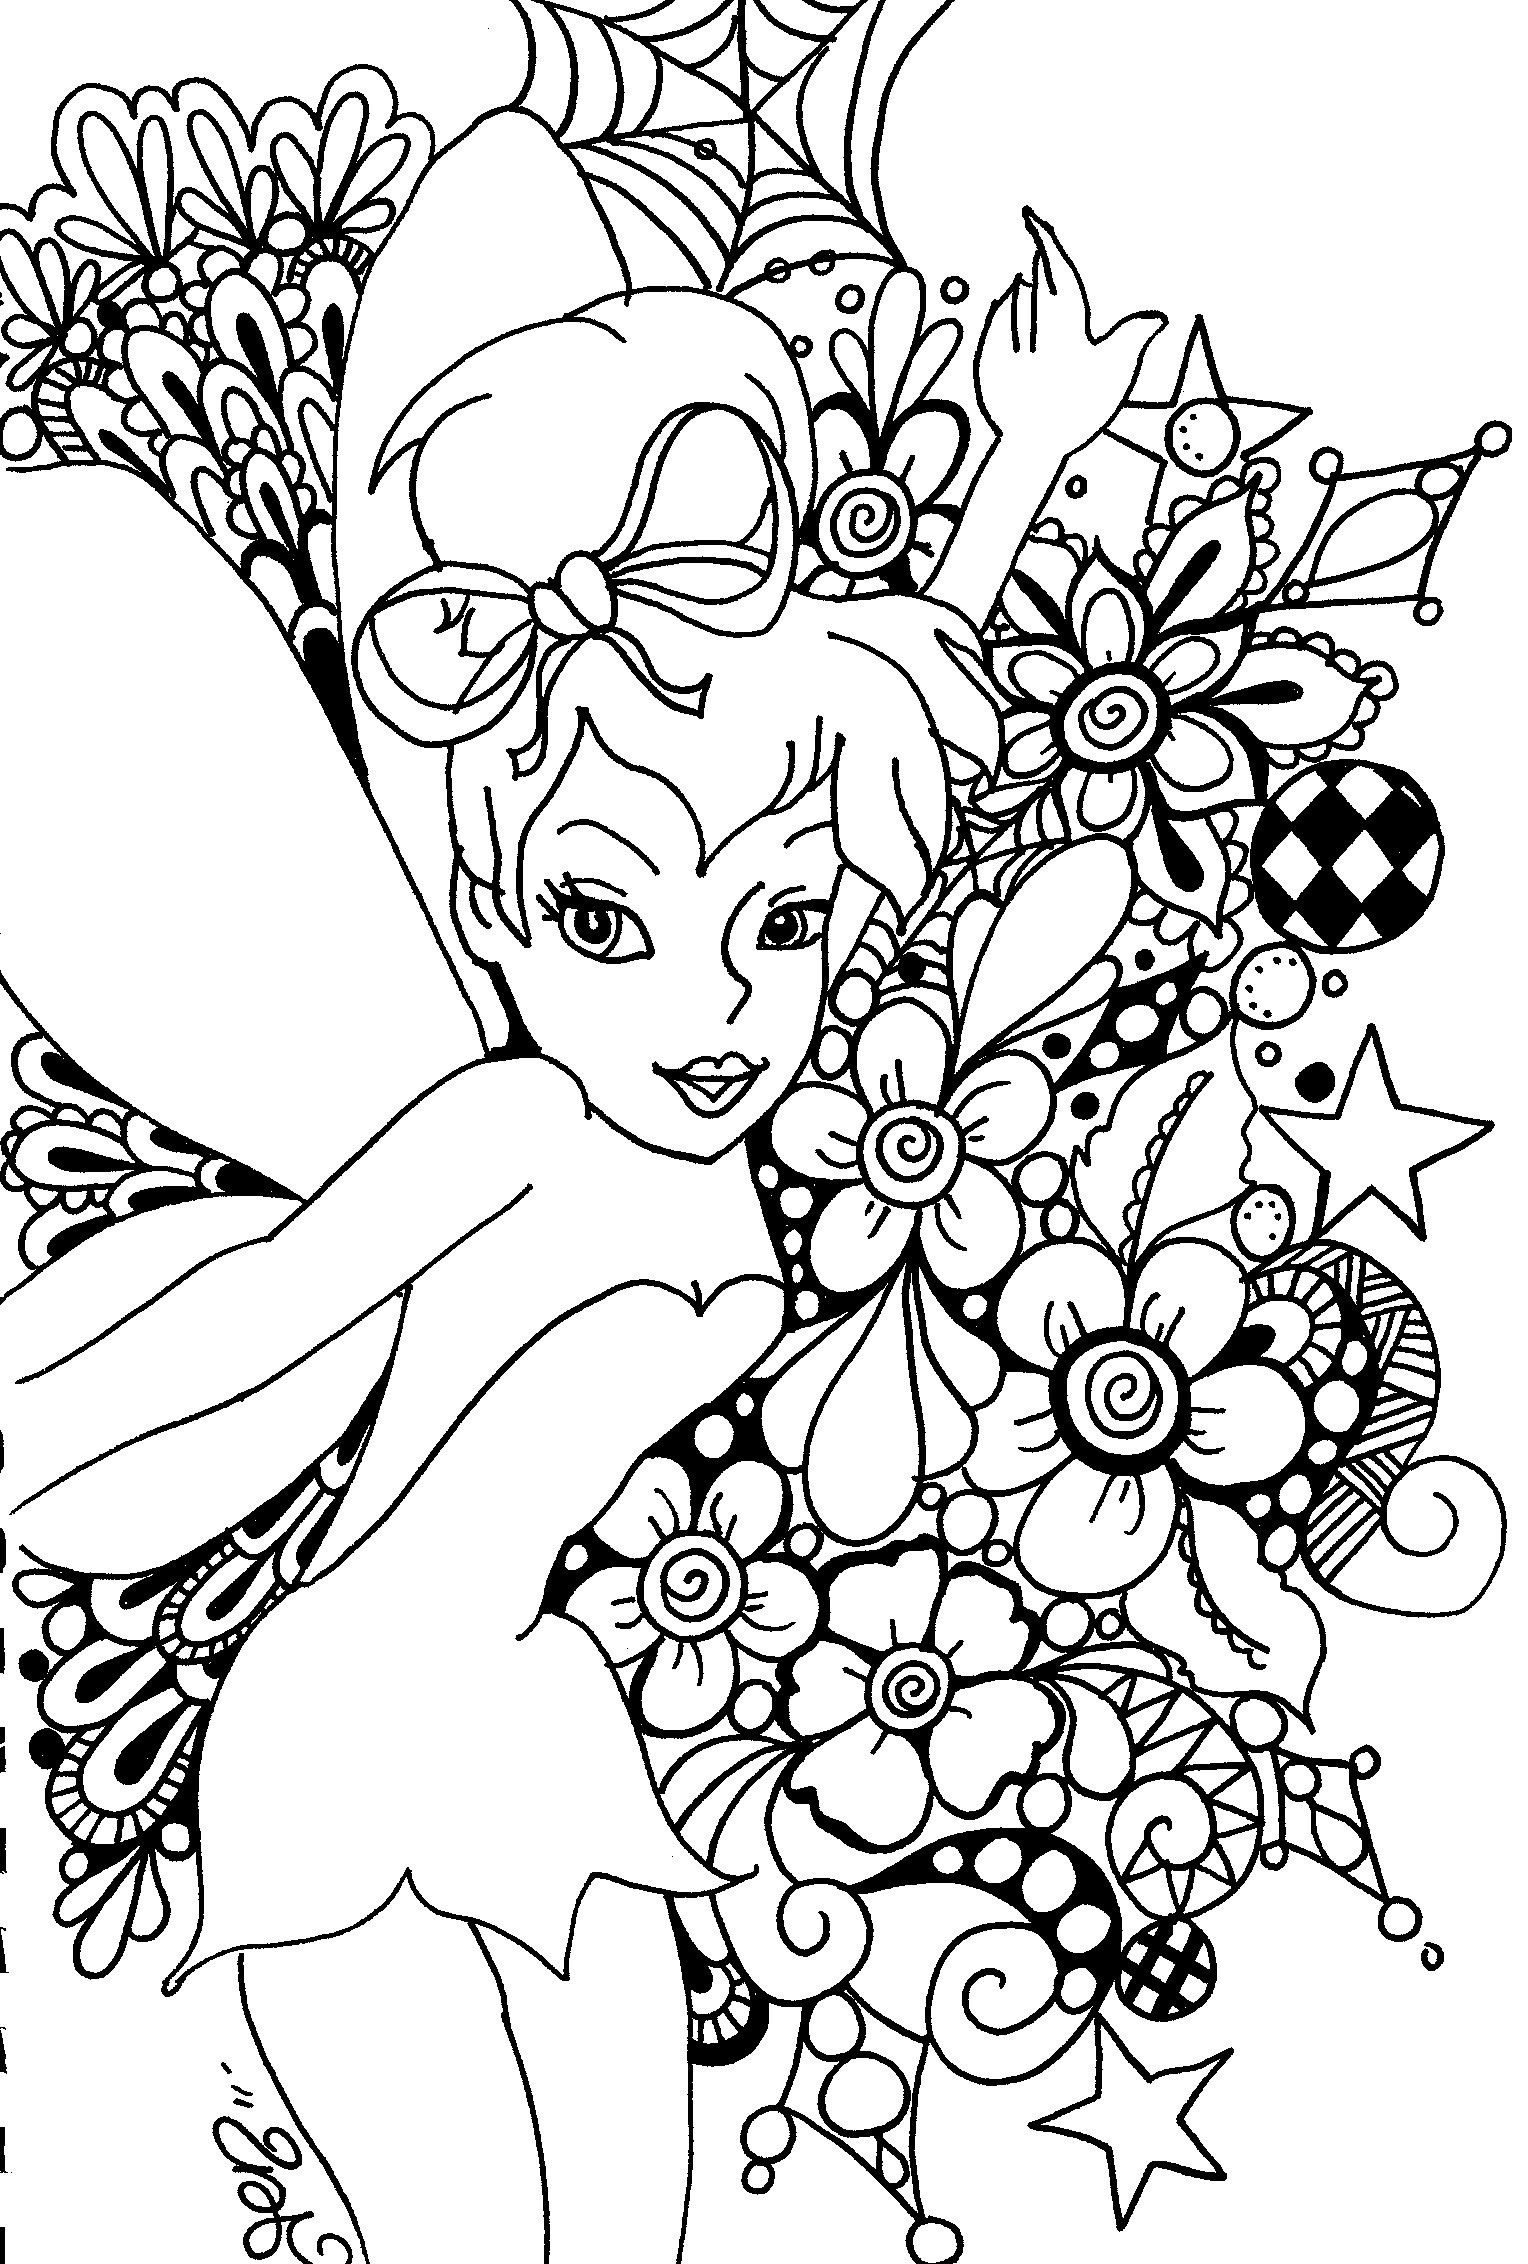 Pin von Sunshine indixie auf coloring pages | Pinterest